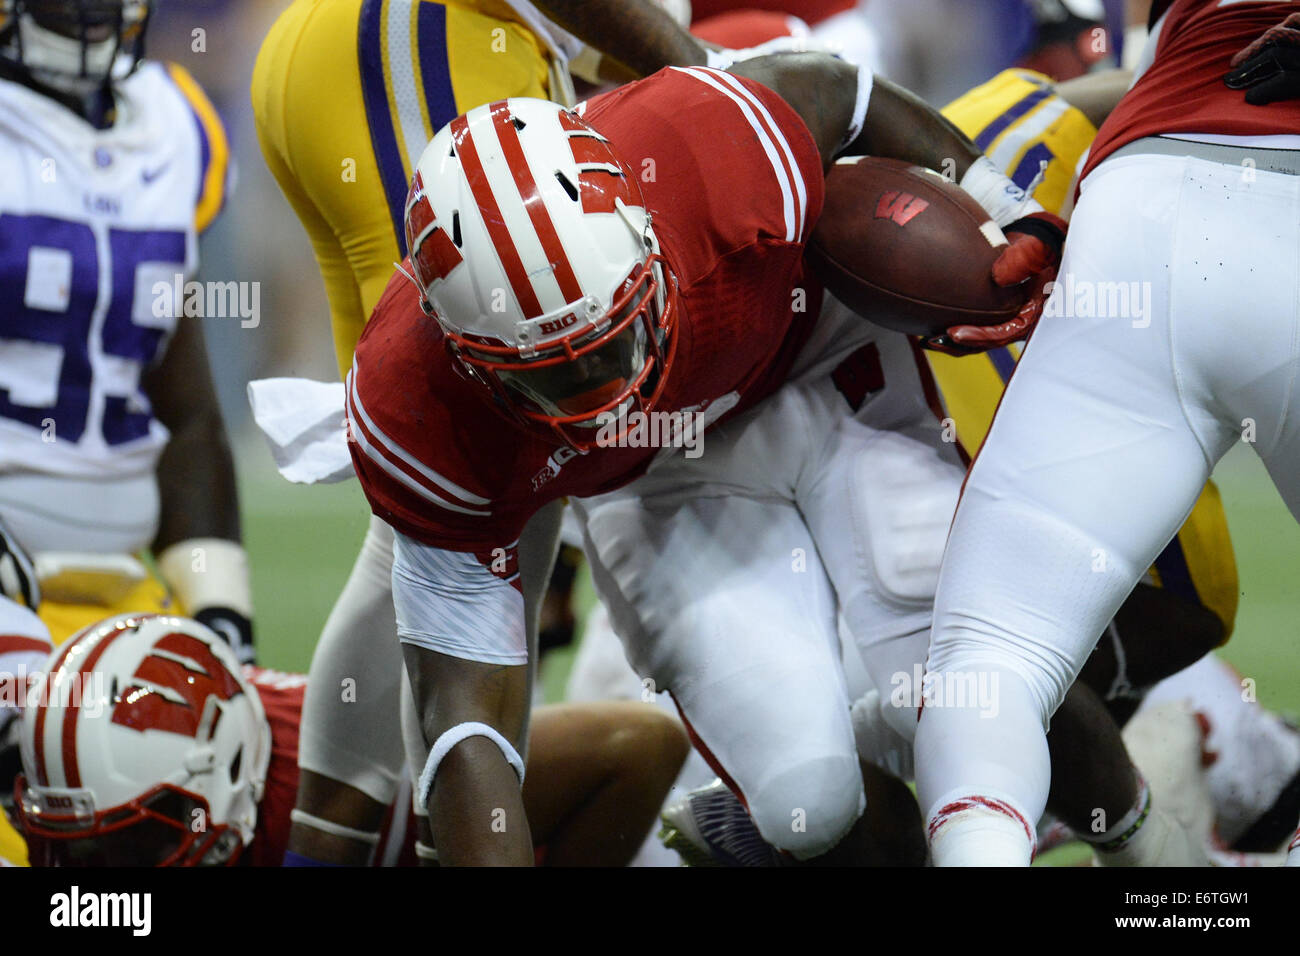 Houston, Texas, USA. 30th Aug, 2014. Wisconsin Badgers running back Corey Clement (6) fights his way into the endzone - Stock Image